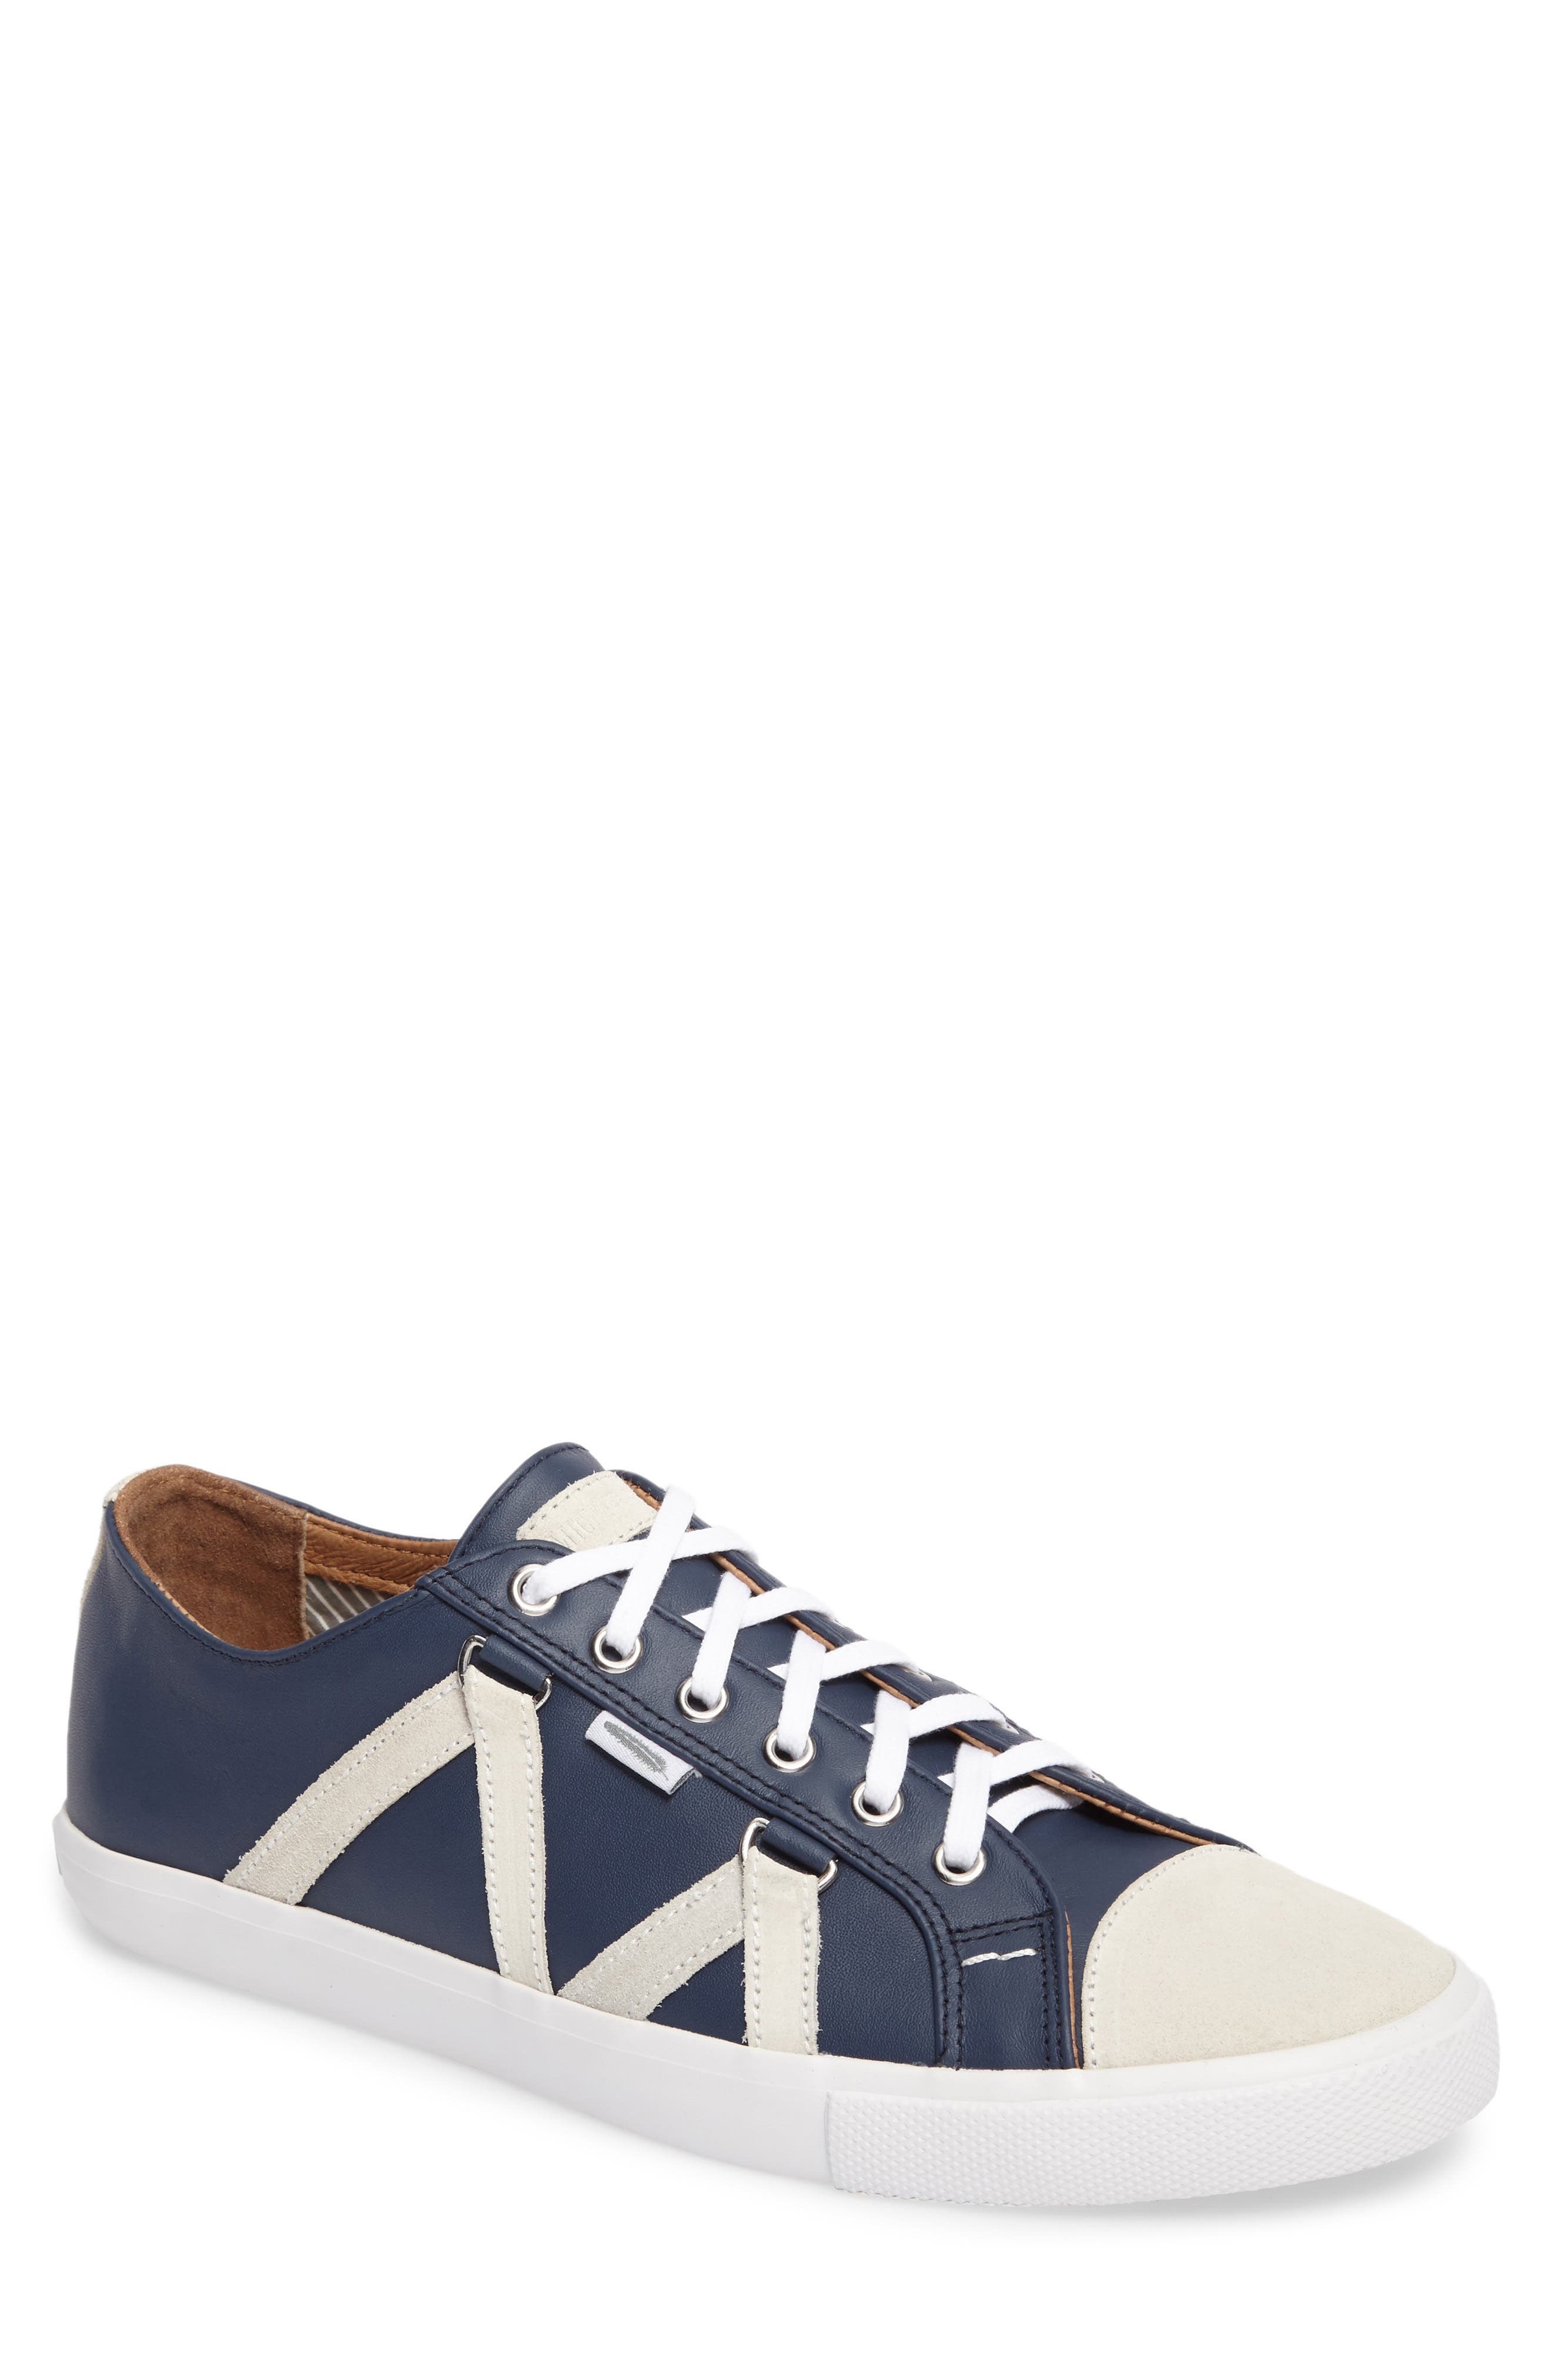 Signature Sneaker,                         Main,                         color, NAVY LEATHER